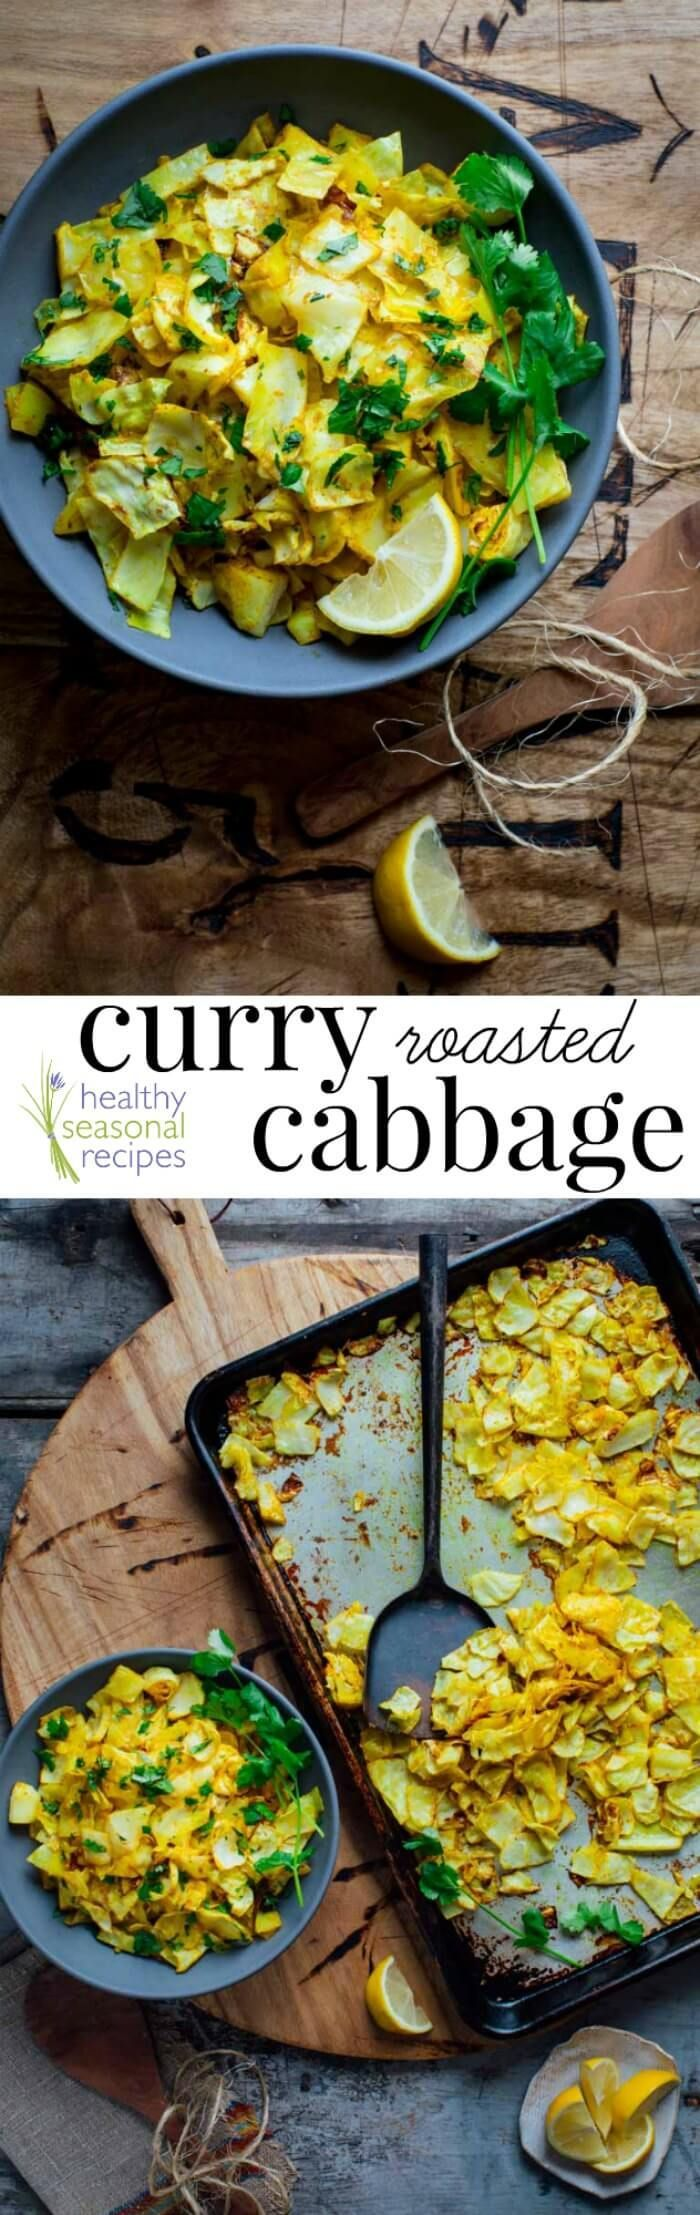 Curry roasted cabbage - Healthy Seasonal Recipes | #lowcarb #cabbage #keto #sidedish #glutenfree #vegan